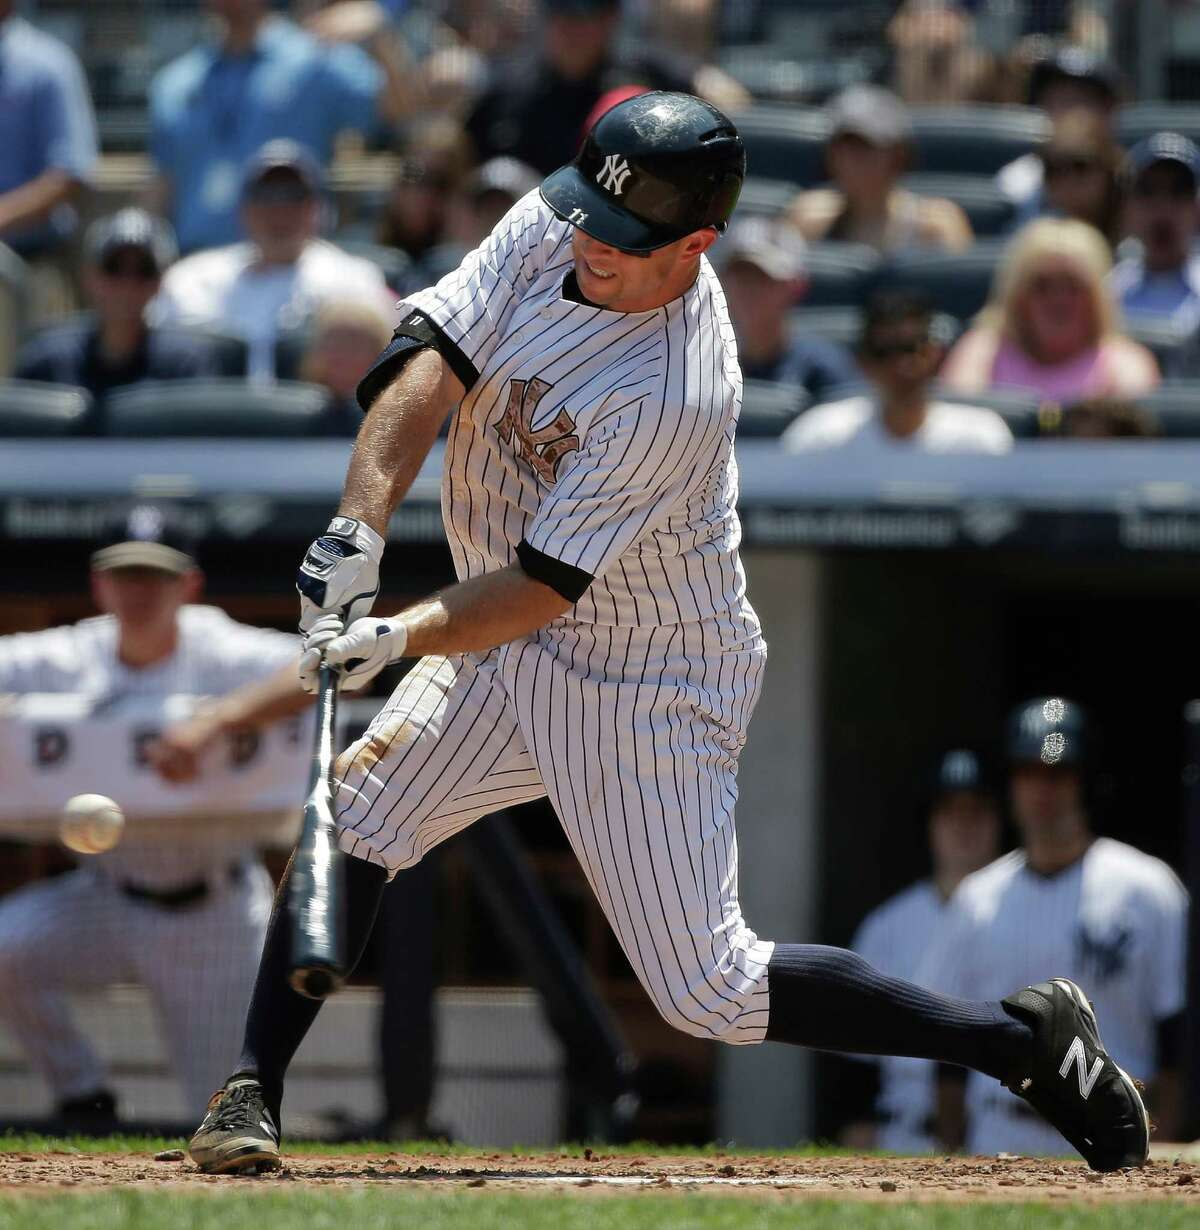 New York Yankees left fielder Brett Gardner (11) connects for a three-run home run against the Kansas City Royals during the first inning of a baseball game, Monday, May 25, 2015, in New York. (AP Photo/Julie Jacobson) ORG XMIT: NYY108